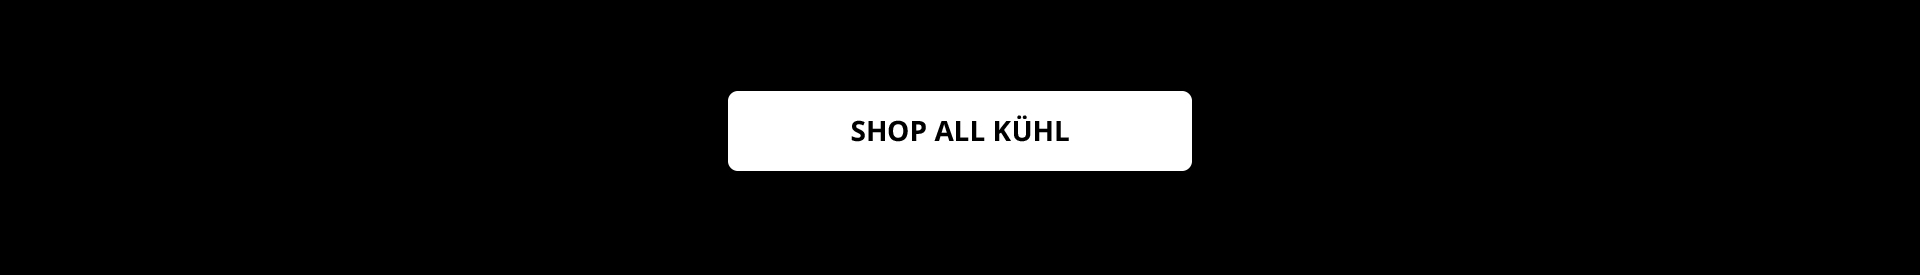 Shop All Kuhl